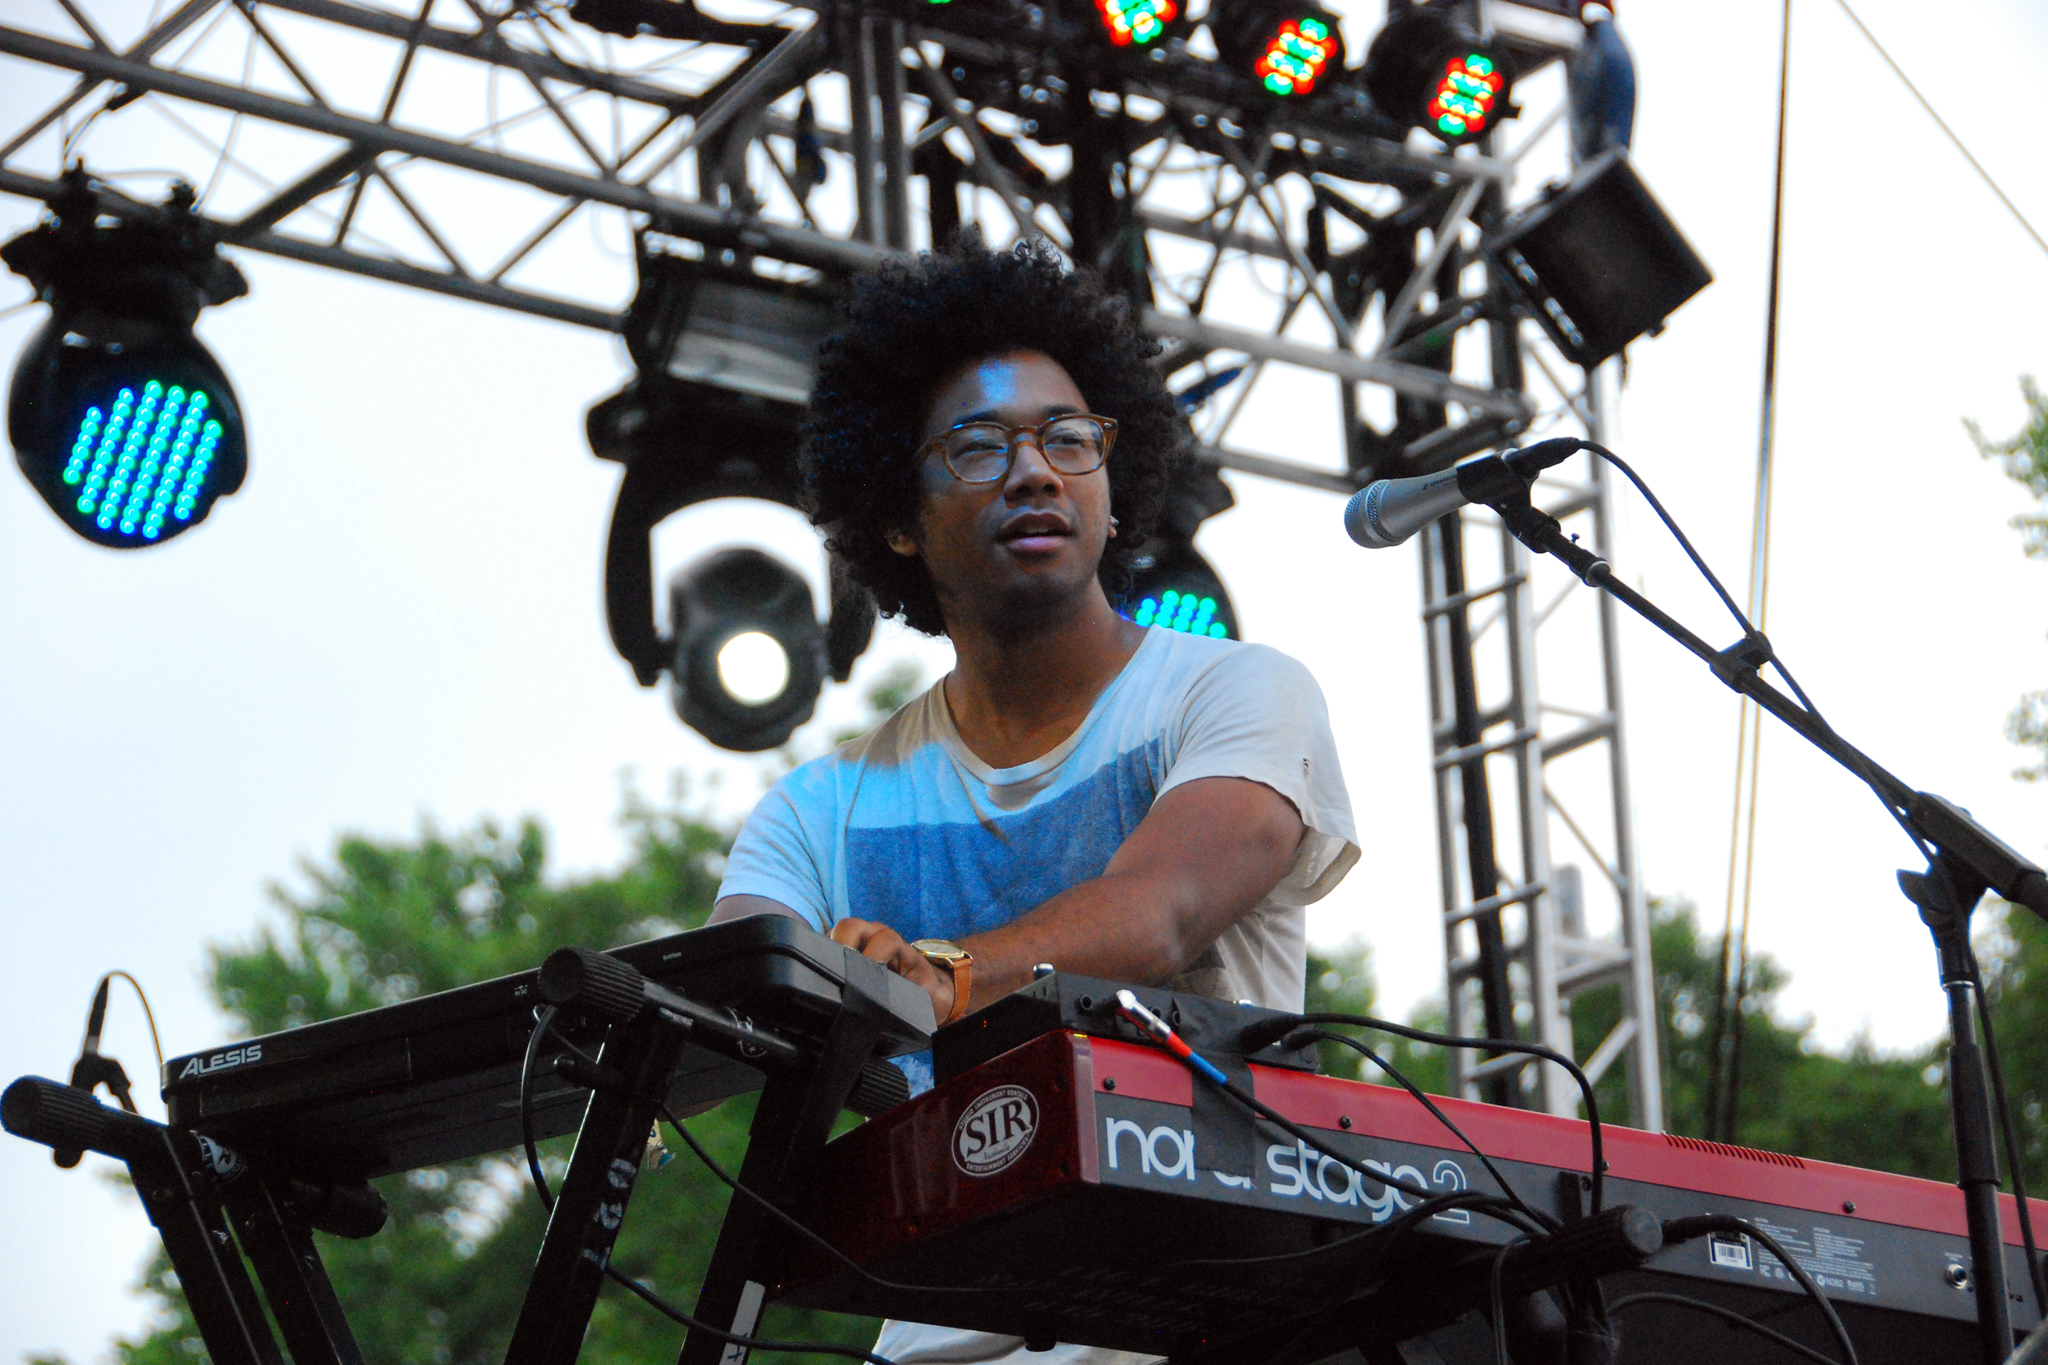 Toro y Moi + Vinyl Williams